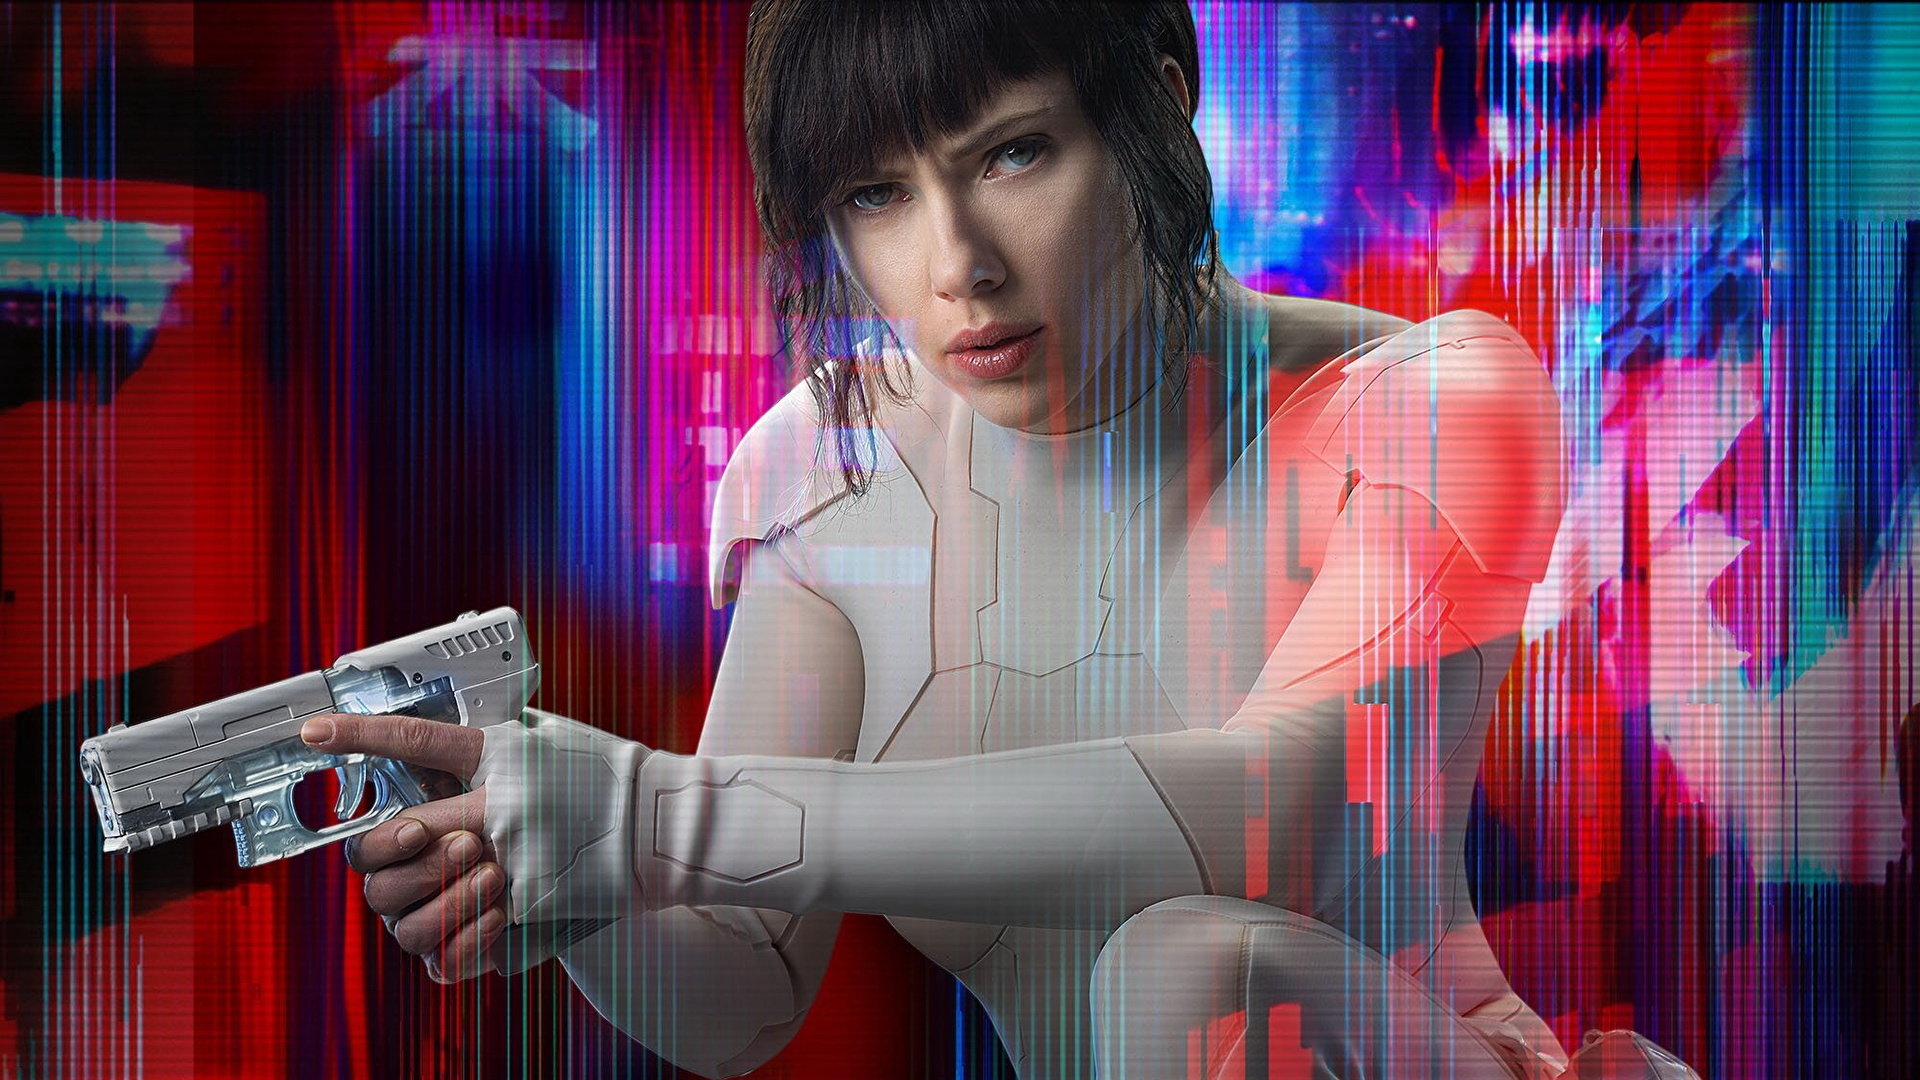 Image Ghost In The Shell 2017 Scarlett Johansson Pistol 1920x1080